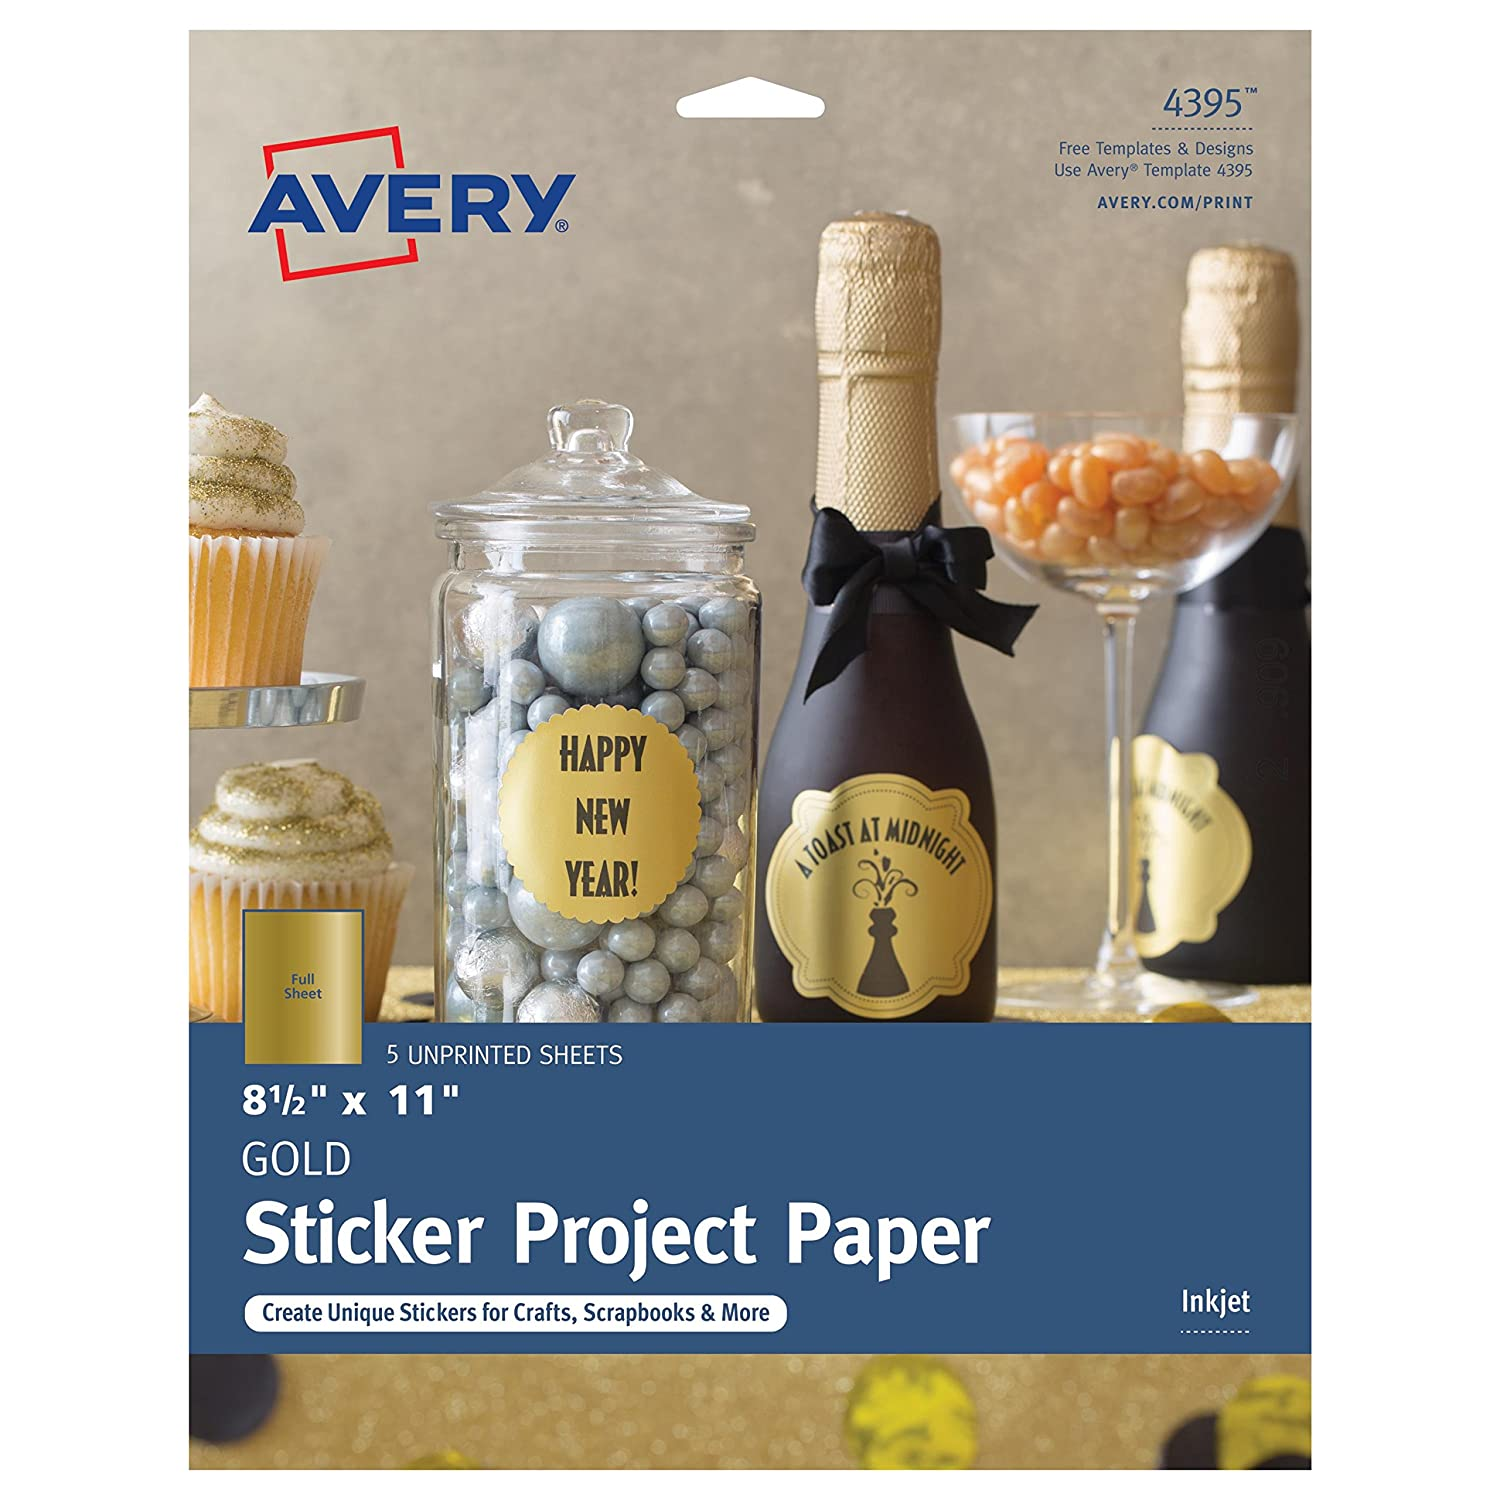 Avery Sticker Project Paper, Repositionable Adhesive, Matte Clear, 8-1/2